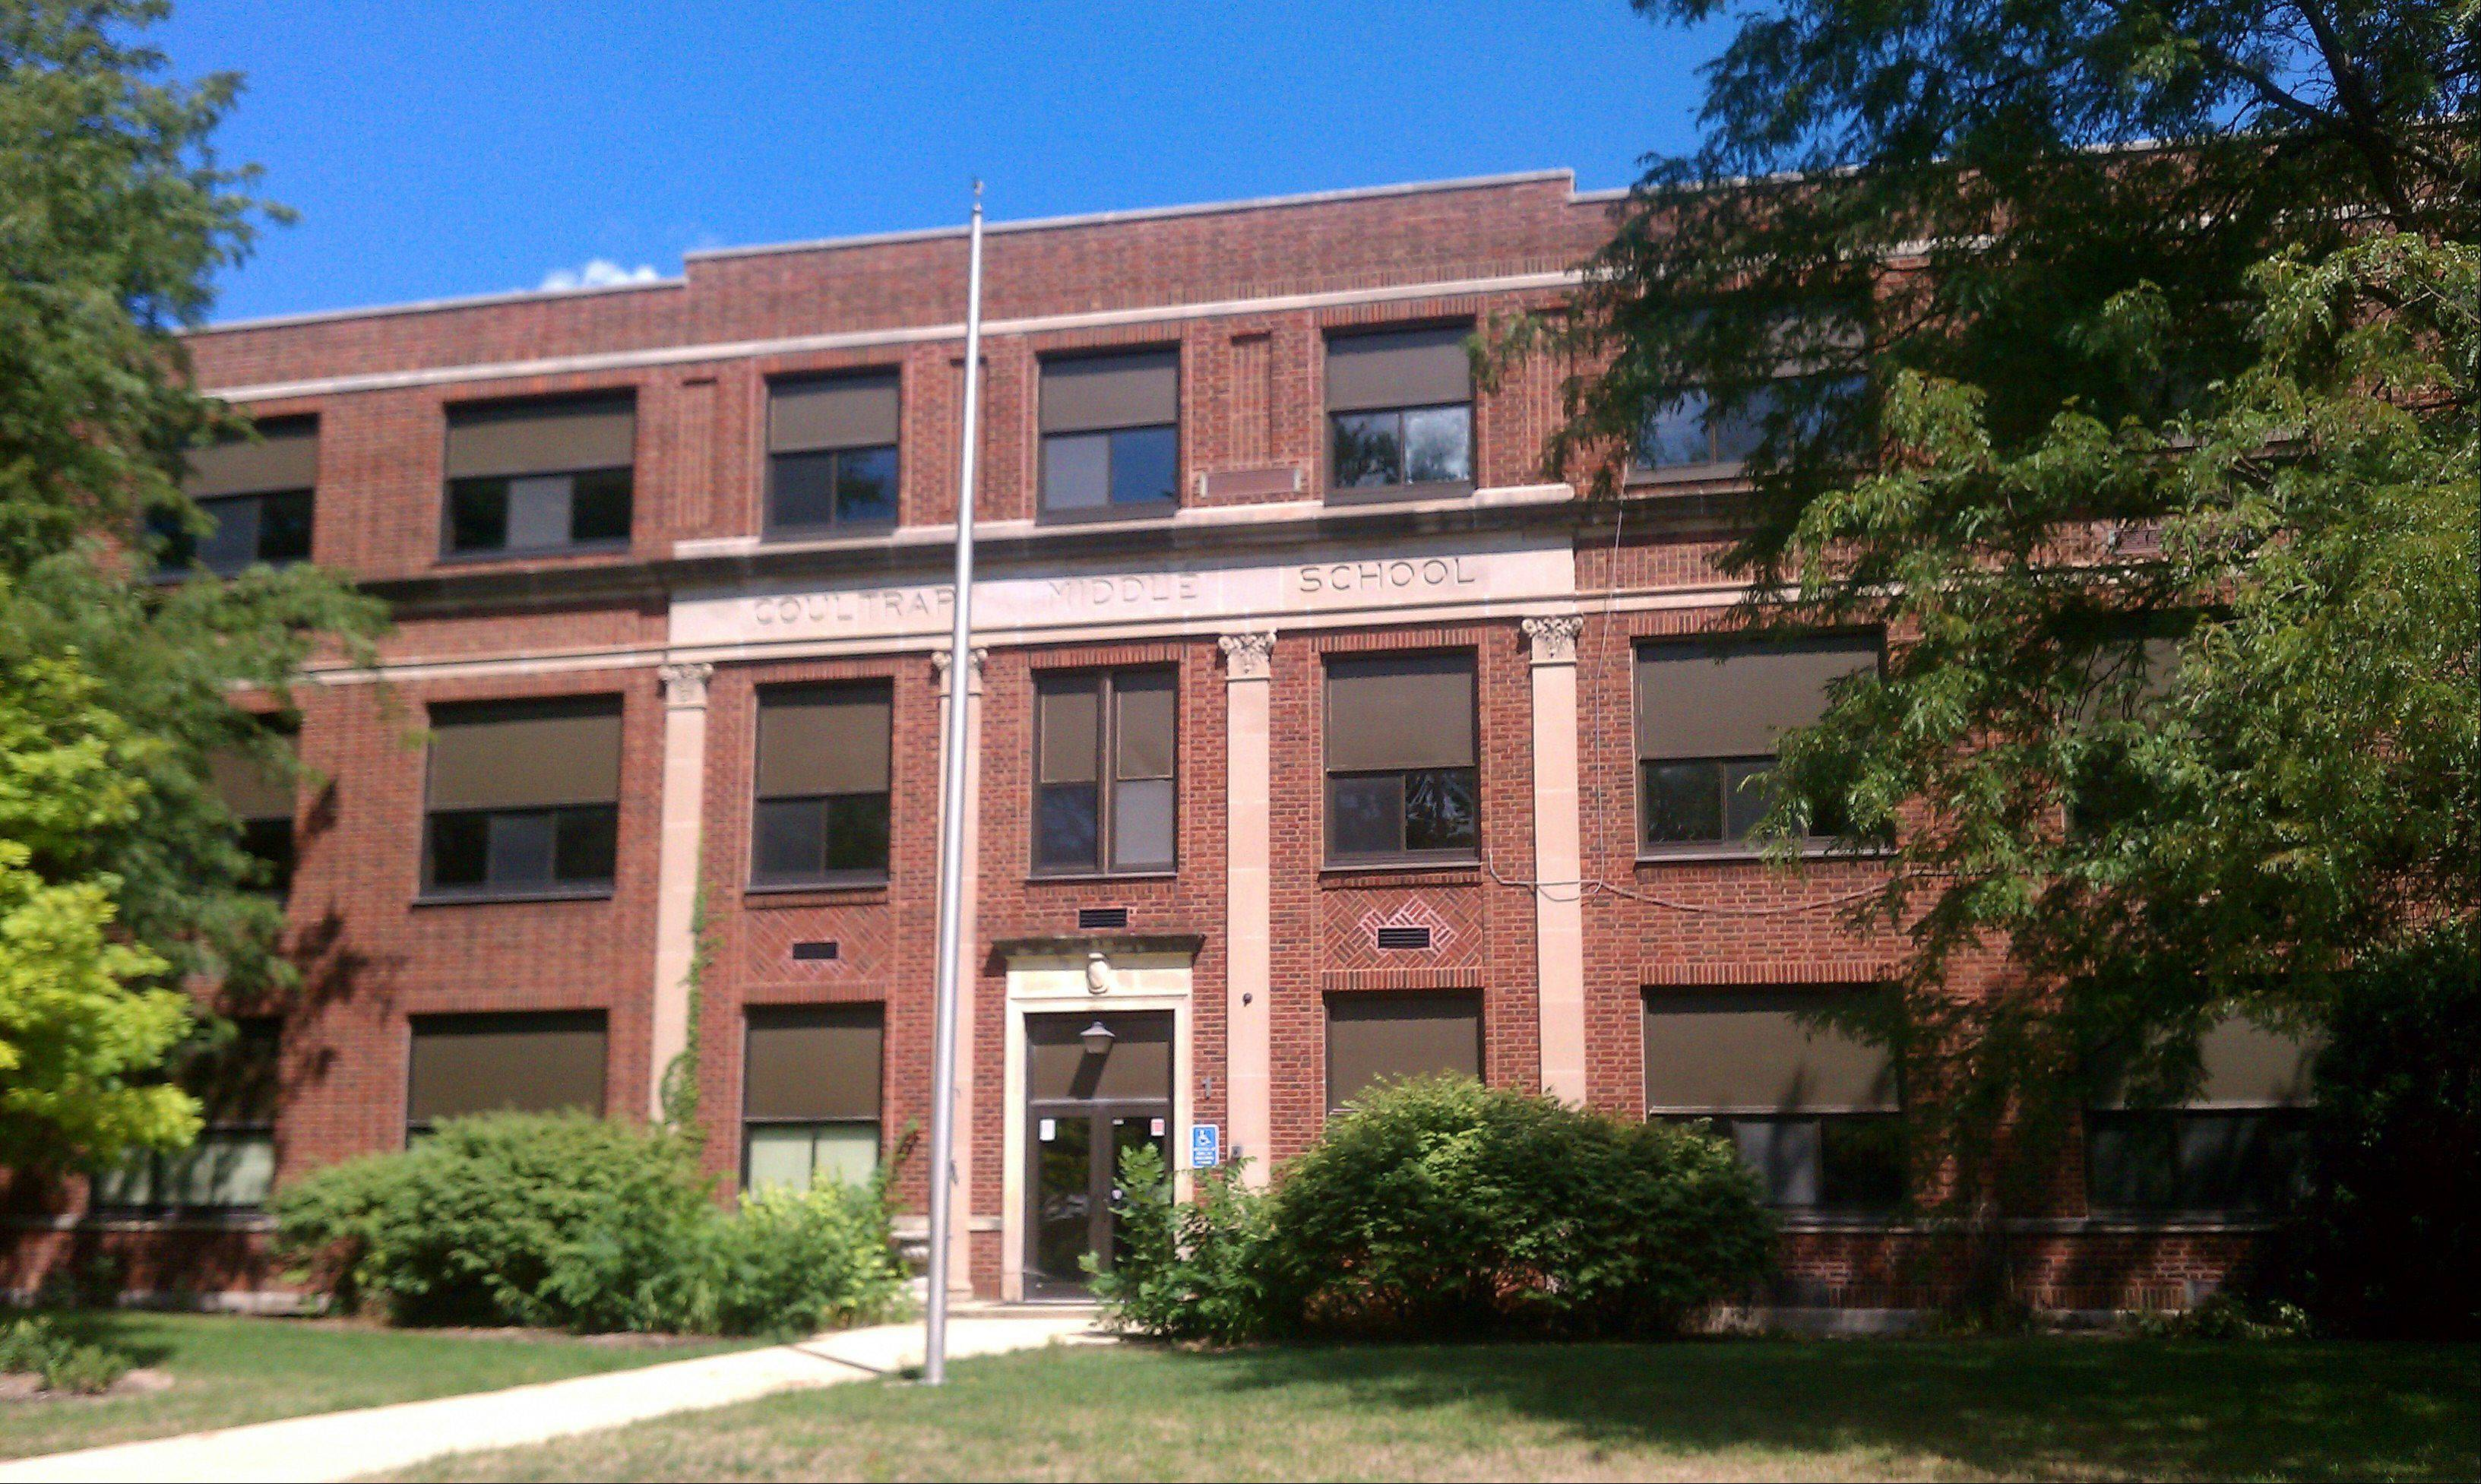 The shuttered Coultrap Elementary School in Geneva seen in August 2012. It was last used by students in 2009.